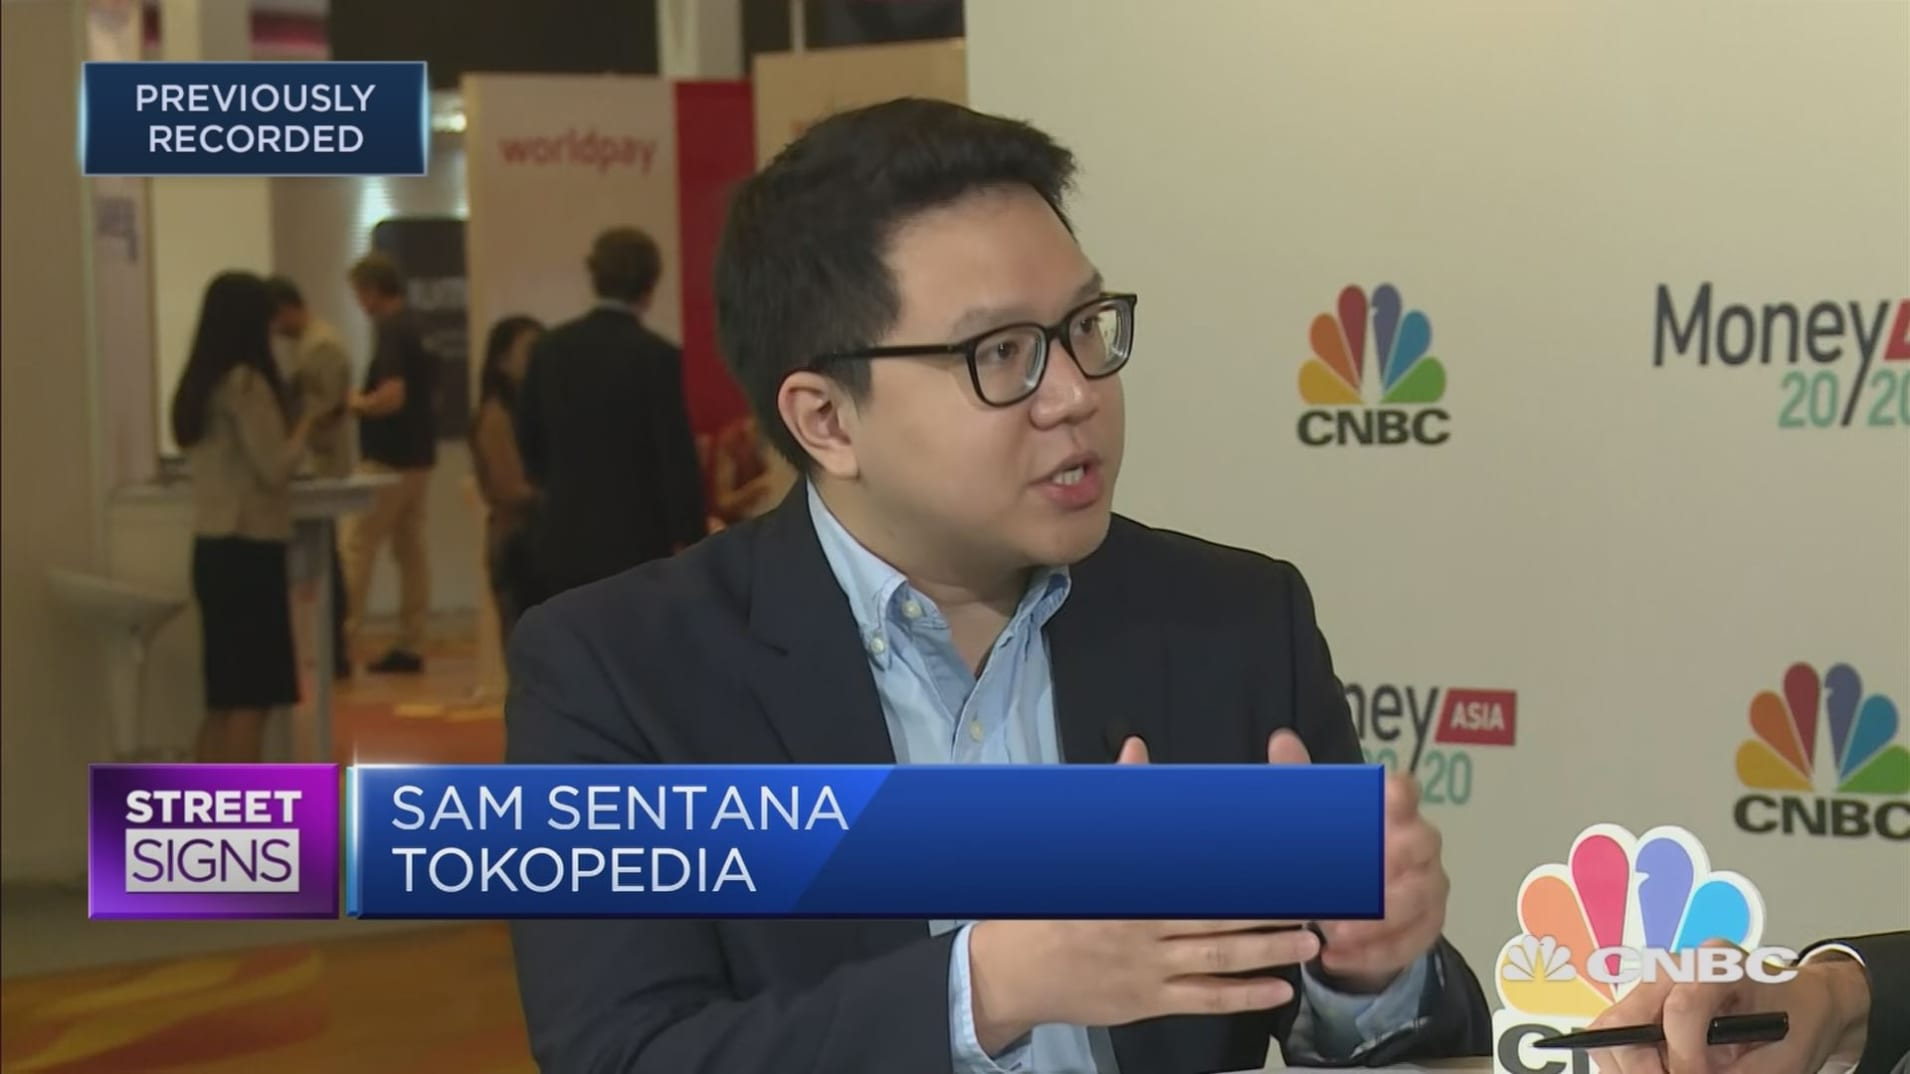 What Indonesia's e-commerce unicorn says it's going to do with $1.1 billion in cash investment